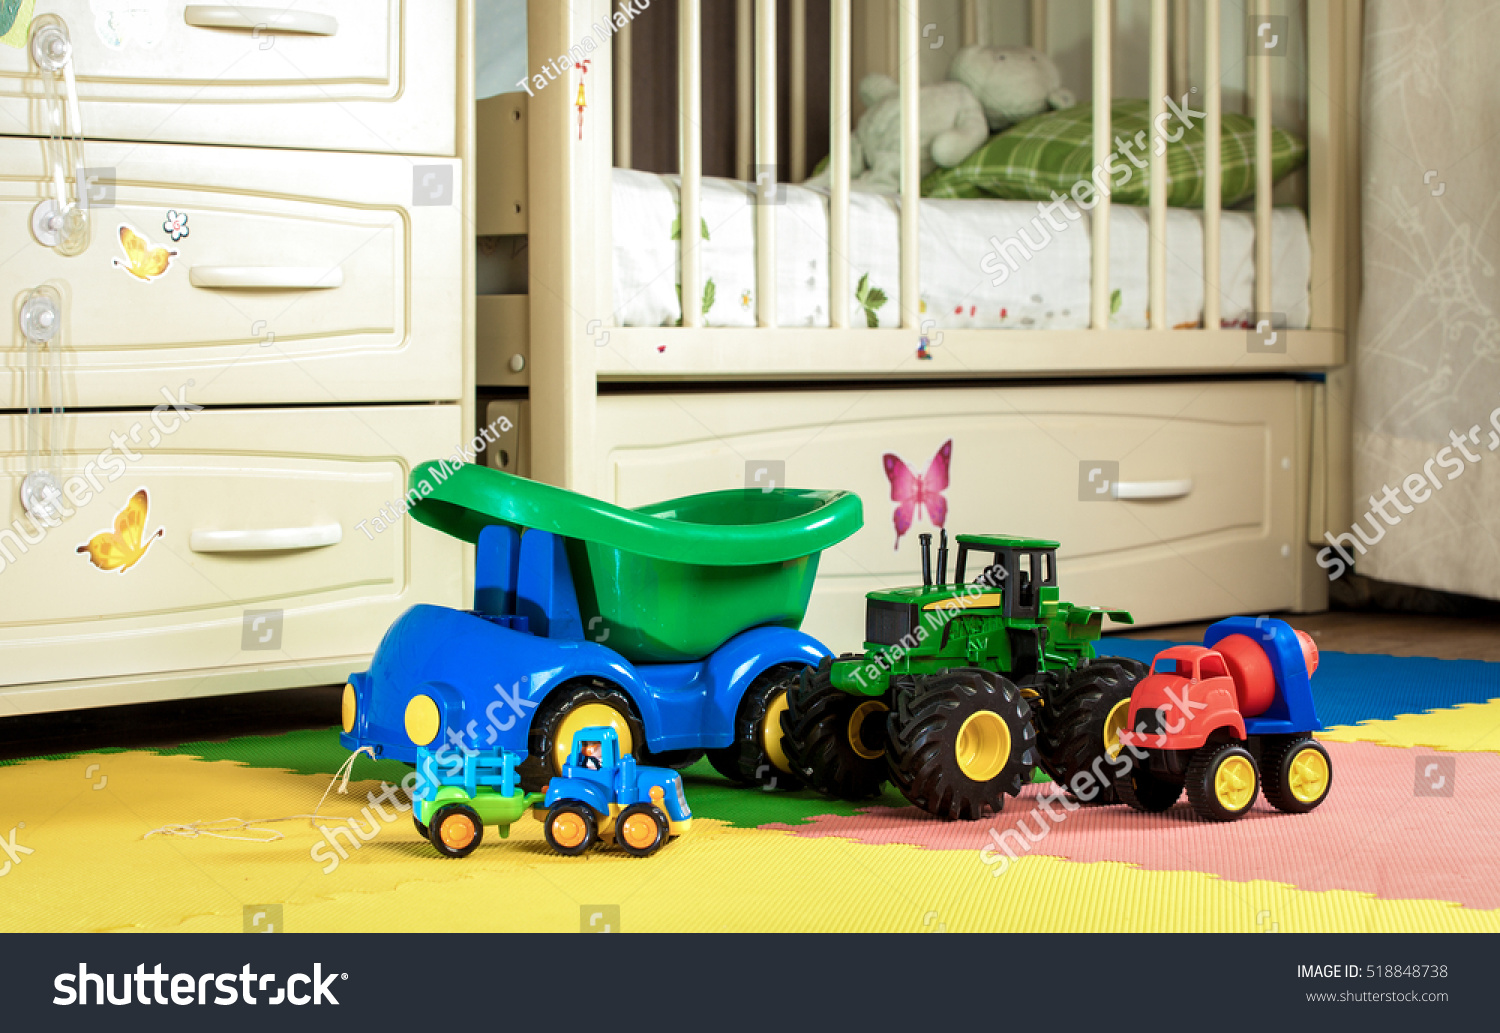 Boy Toys Are In His Room Stock Photo 518848738 Shutterstock